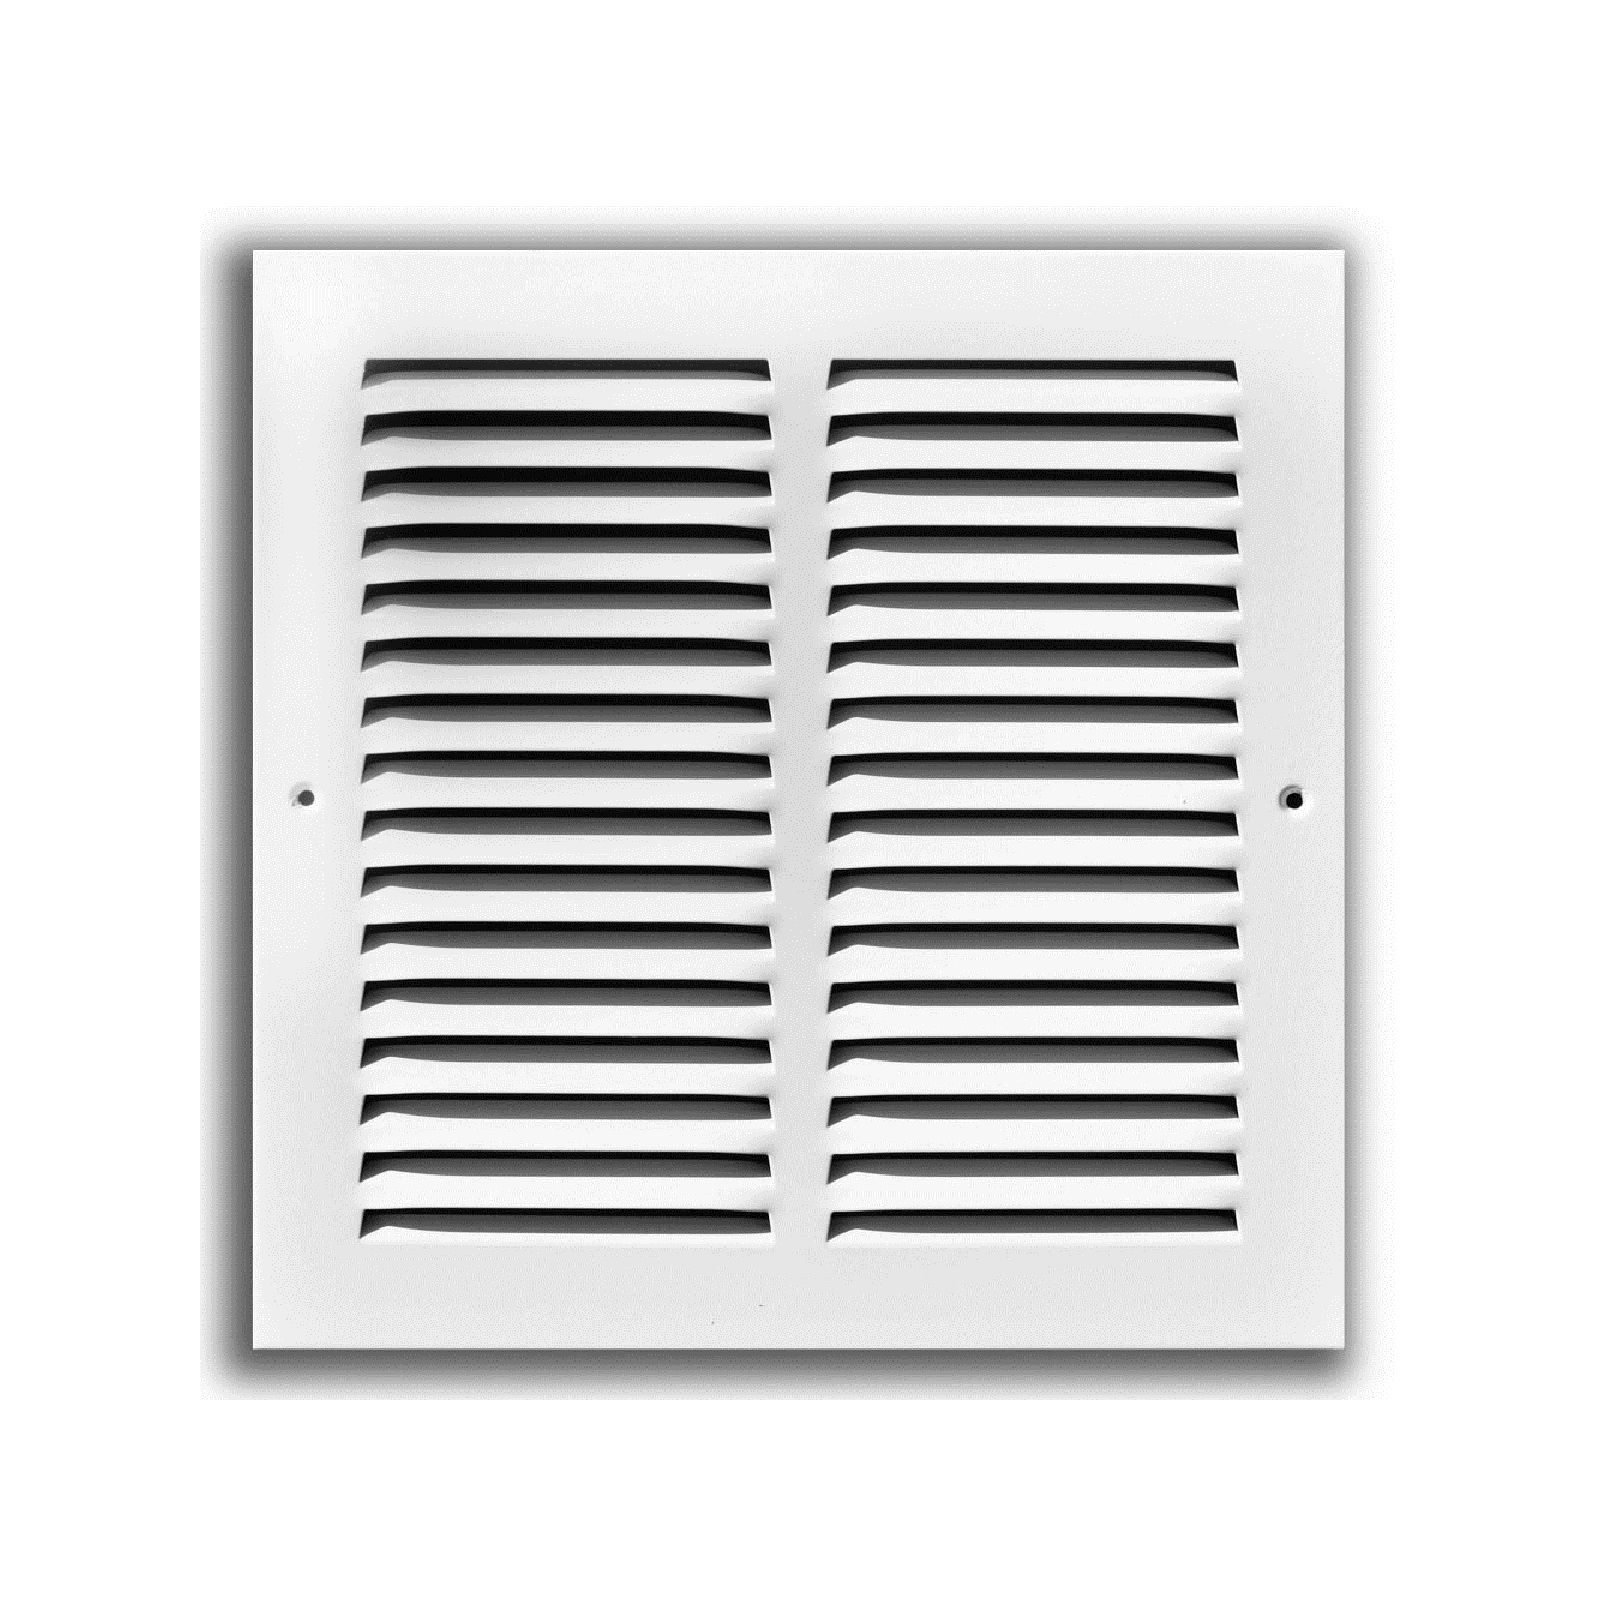 "TRUaire 170 10X08 - Steel Return Air Grille - 1/2"" Spaced Fin, White, 10"" X 08"""